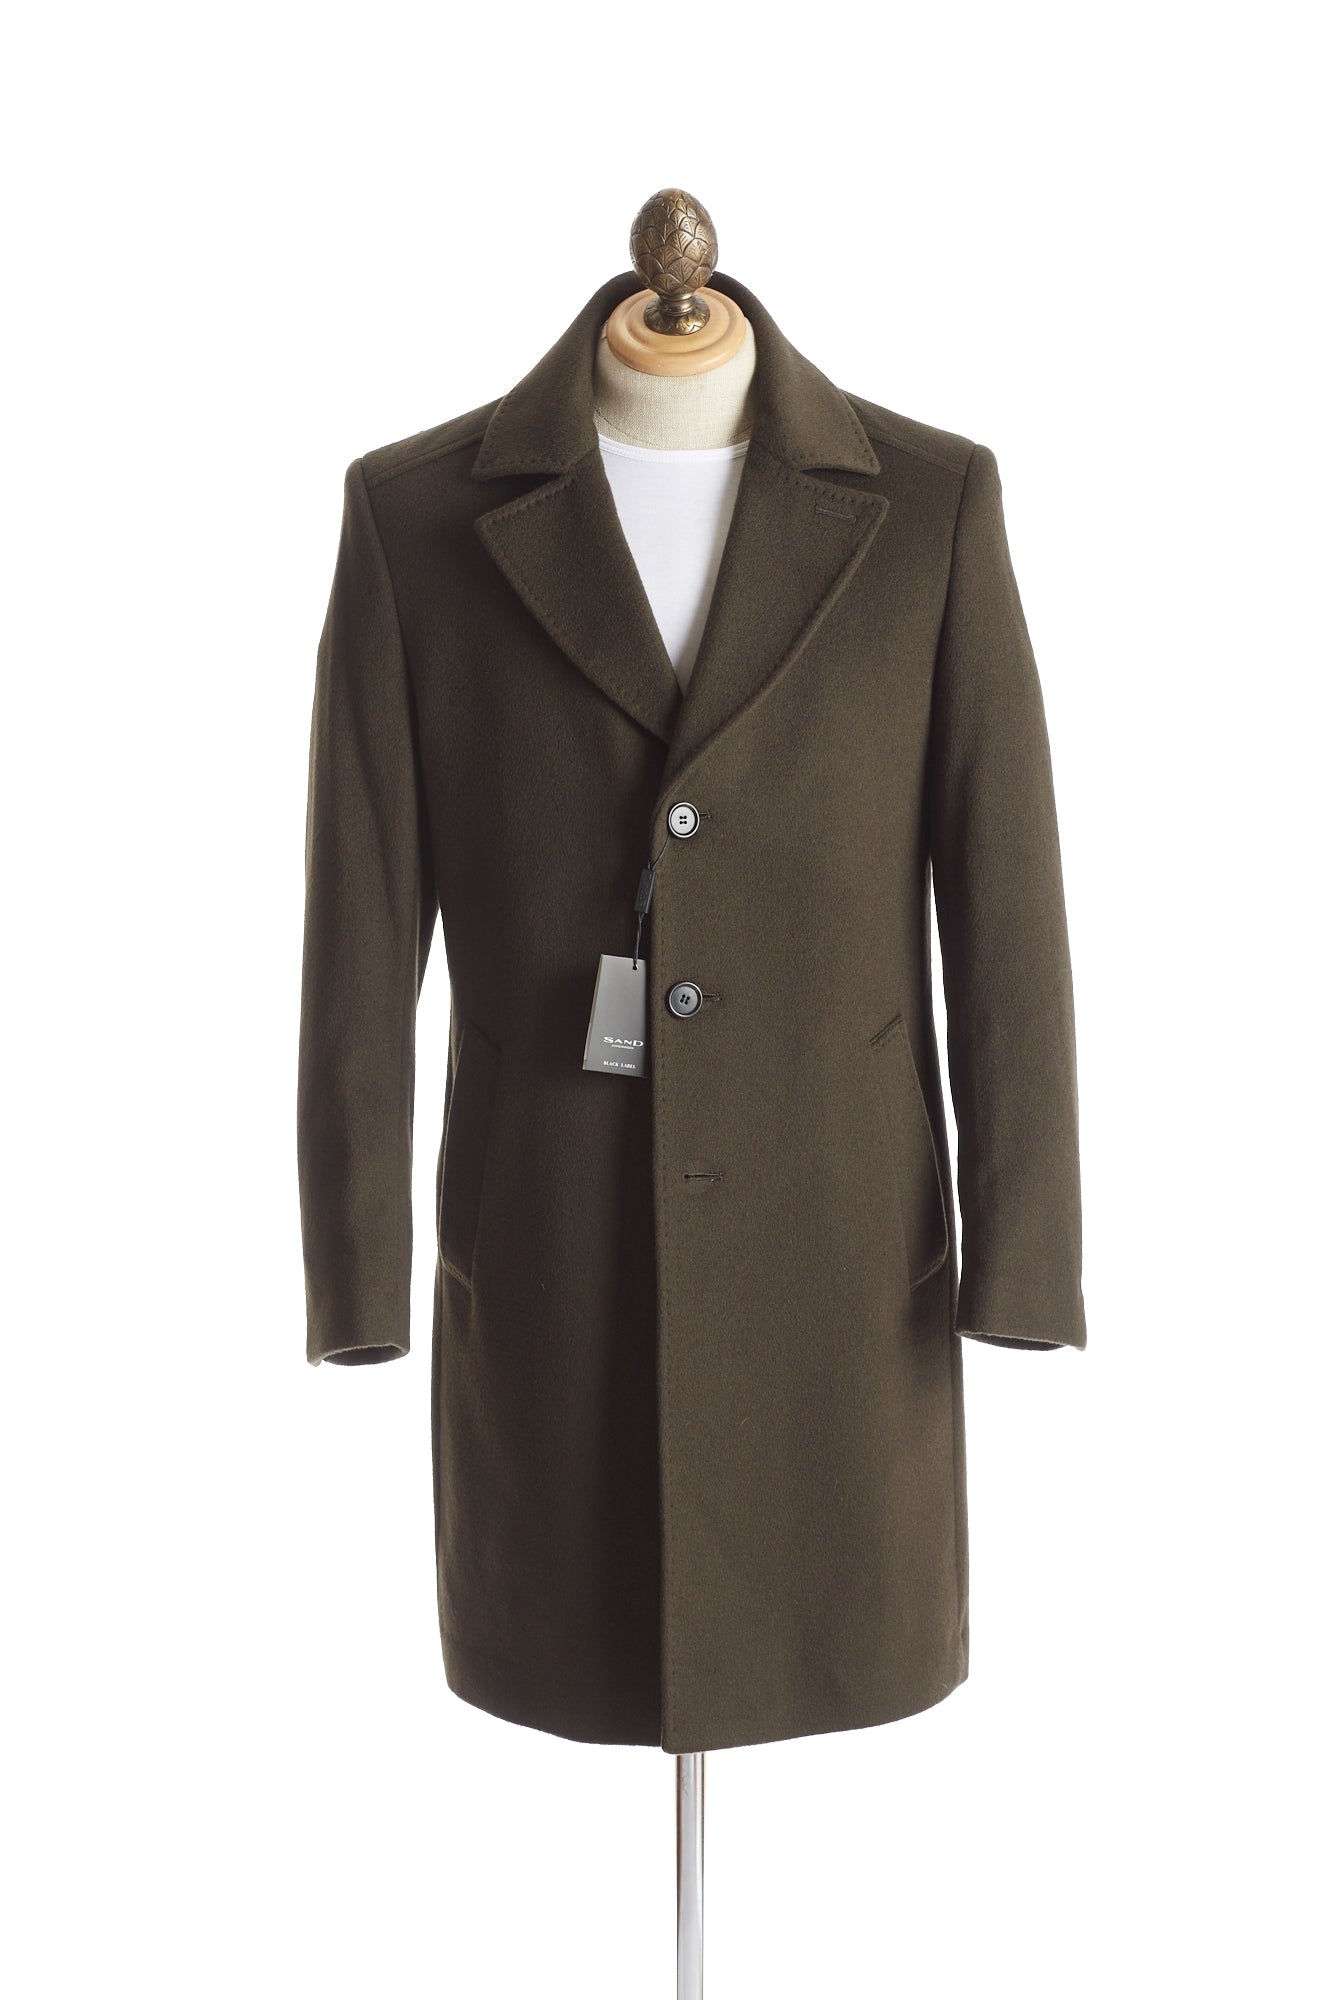 SAND Olive Green Wool-Cashmere Topcoat